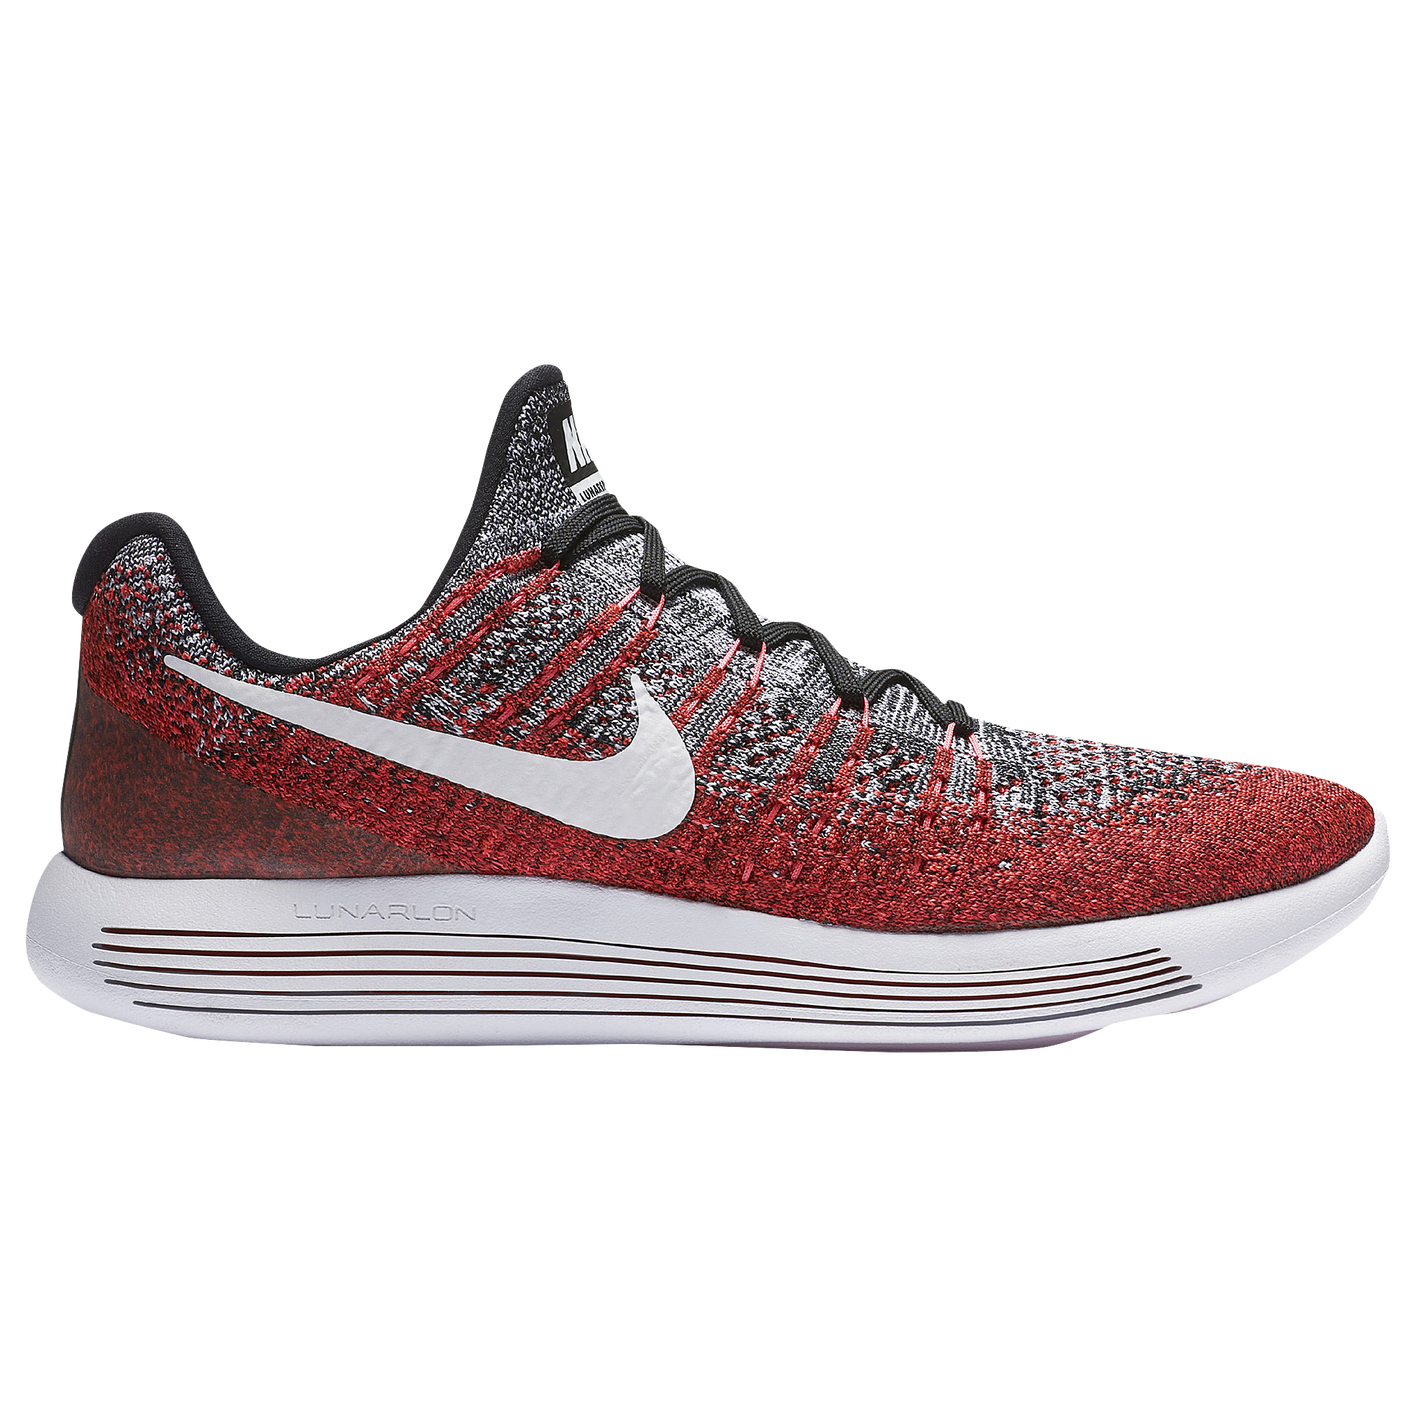 wholesale dealer a8ac1 fe793 Nike LunarEpic Low Flyknit 2 - Men s